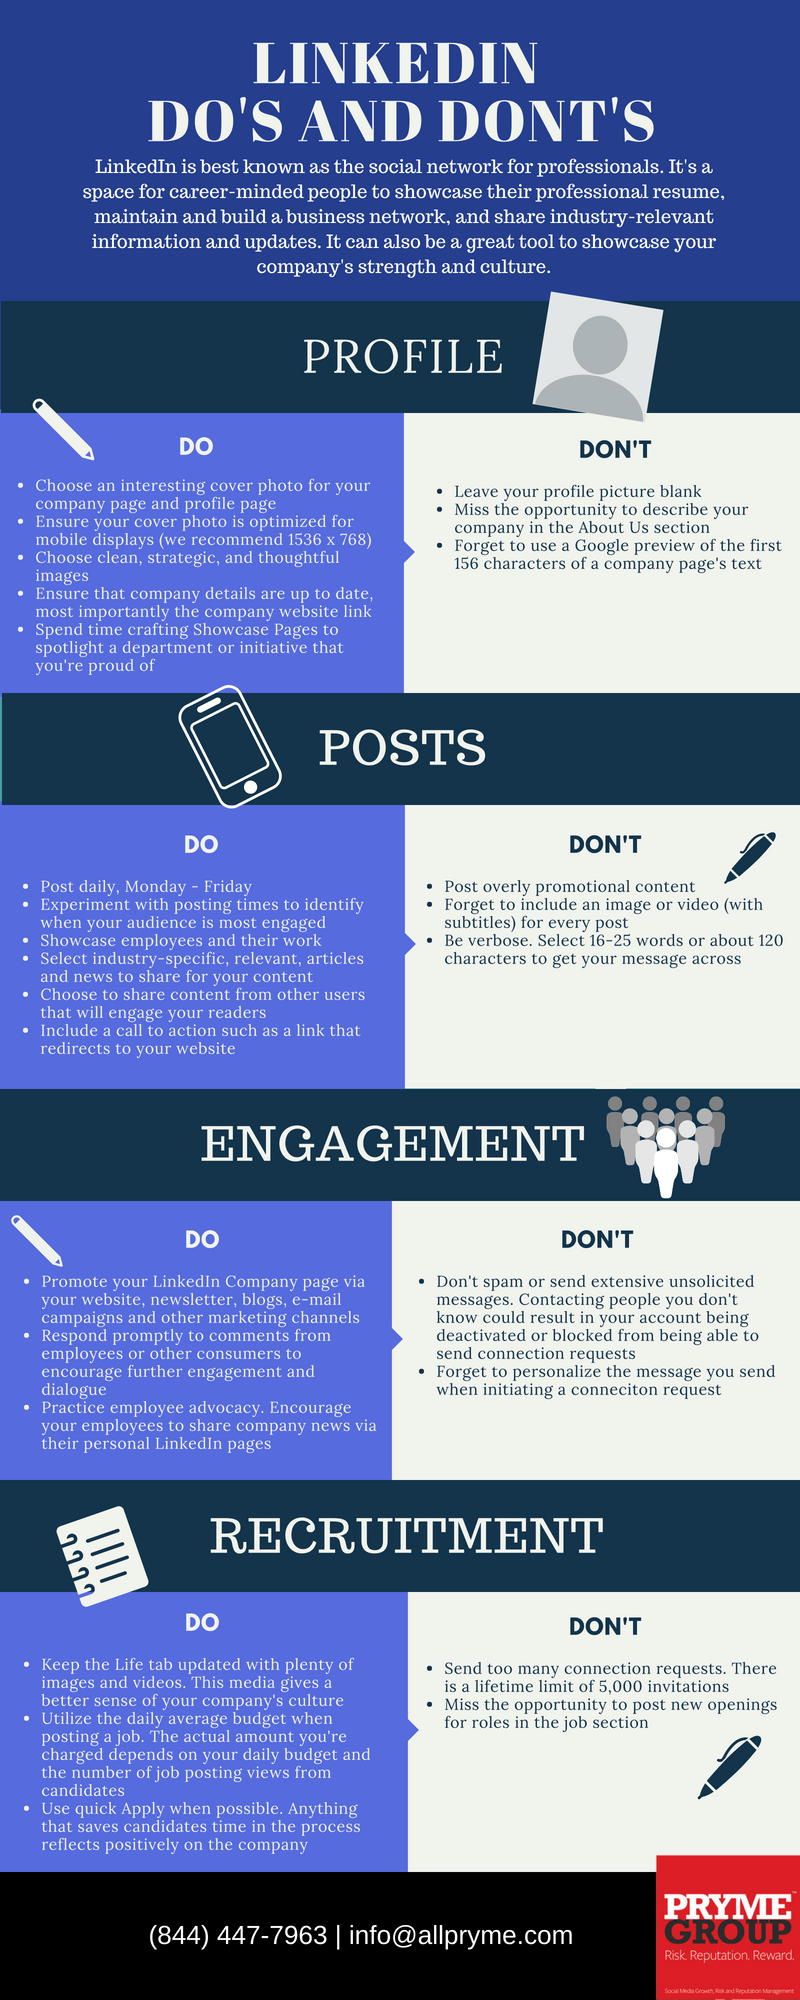 LinkedIn Do's & Don'ts Infographic